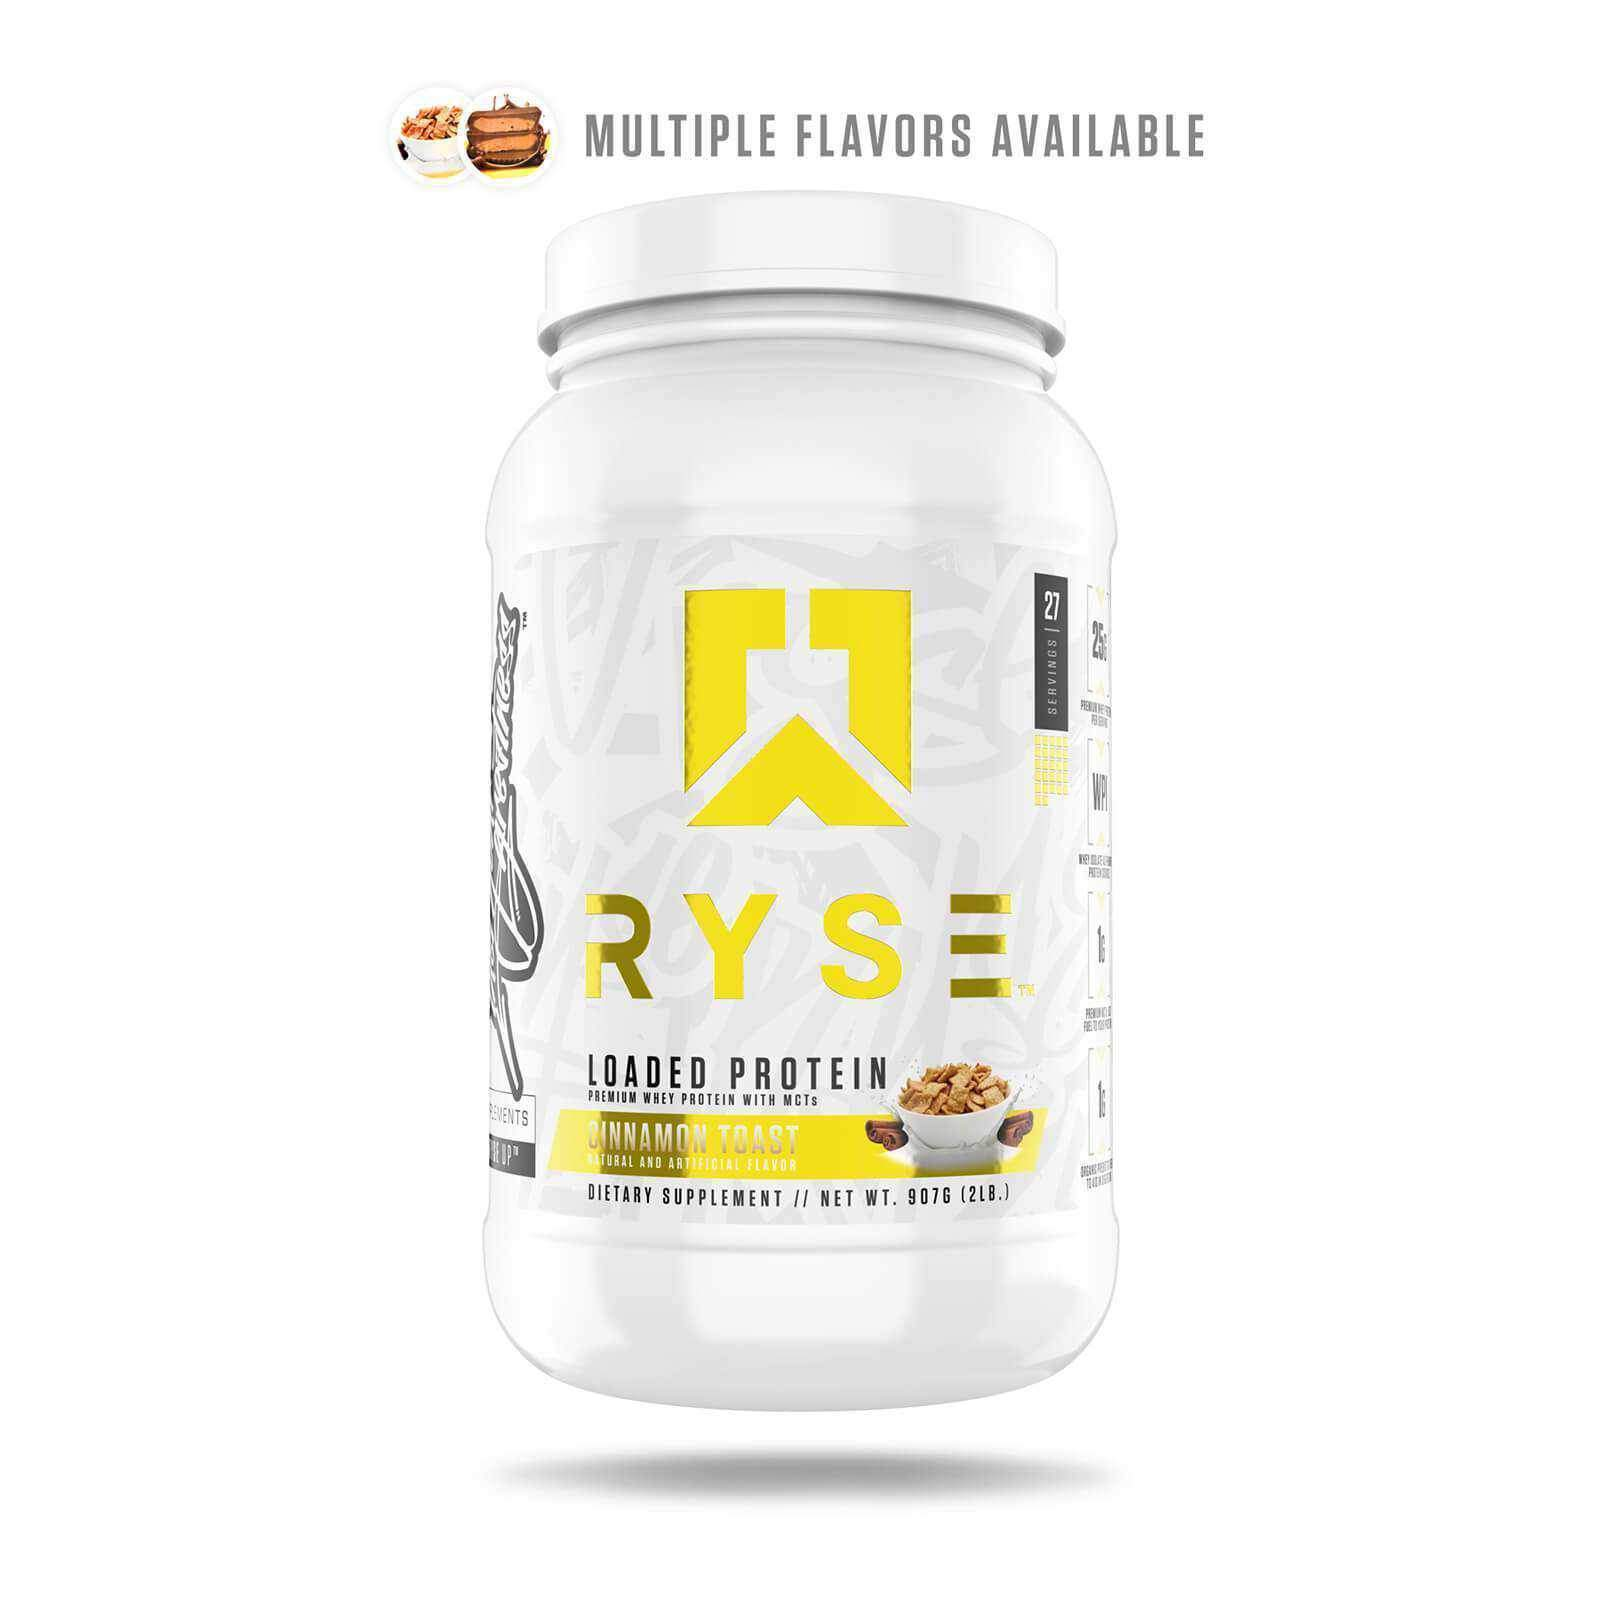 RYSE Supplements Loaded Protein 27 Servings Powder-Protein-londonsupps